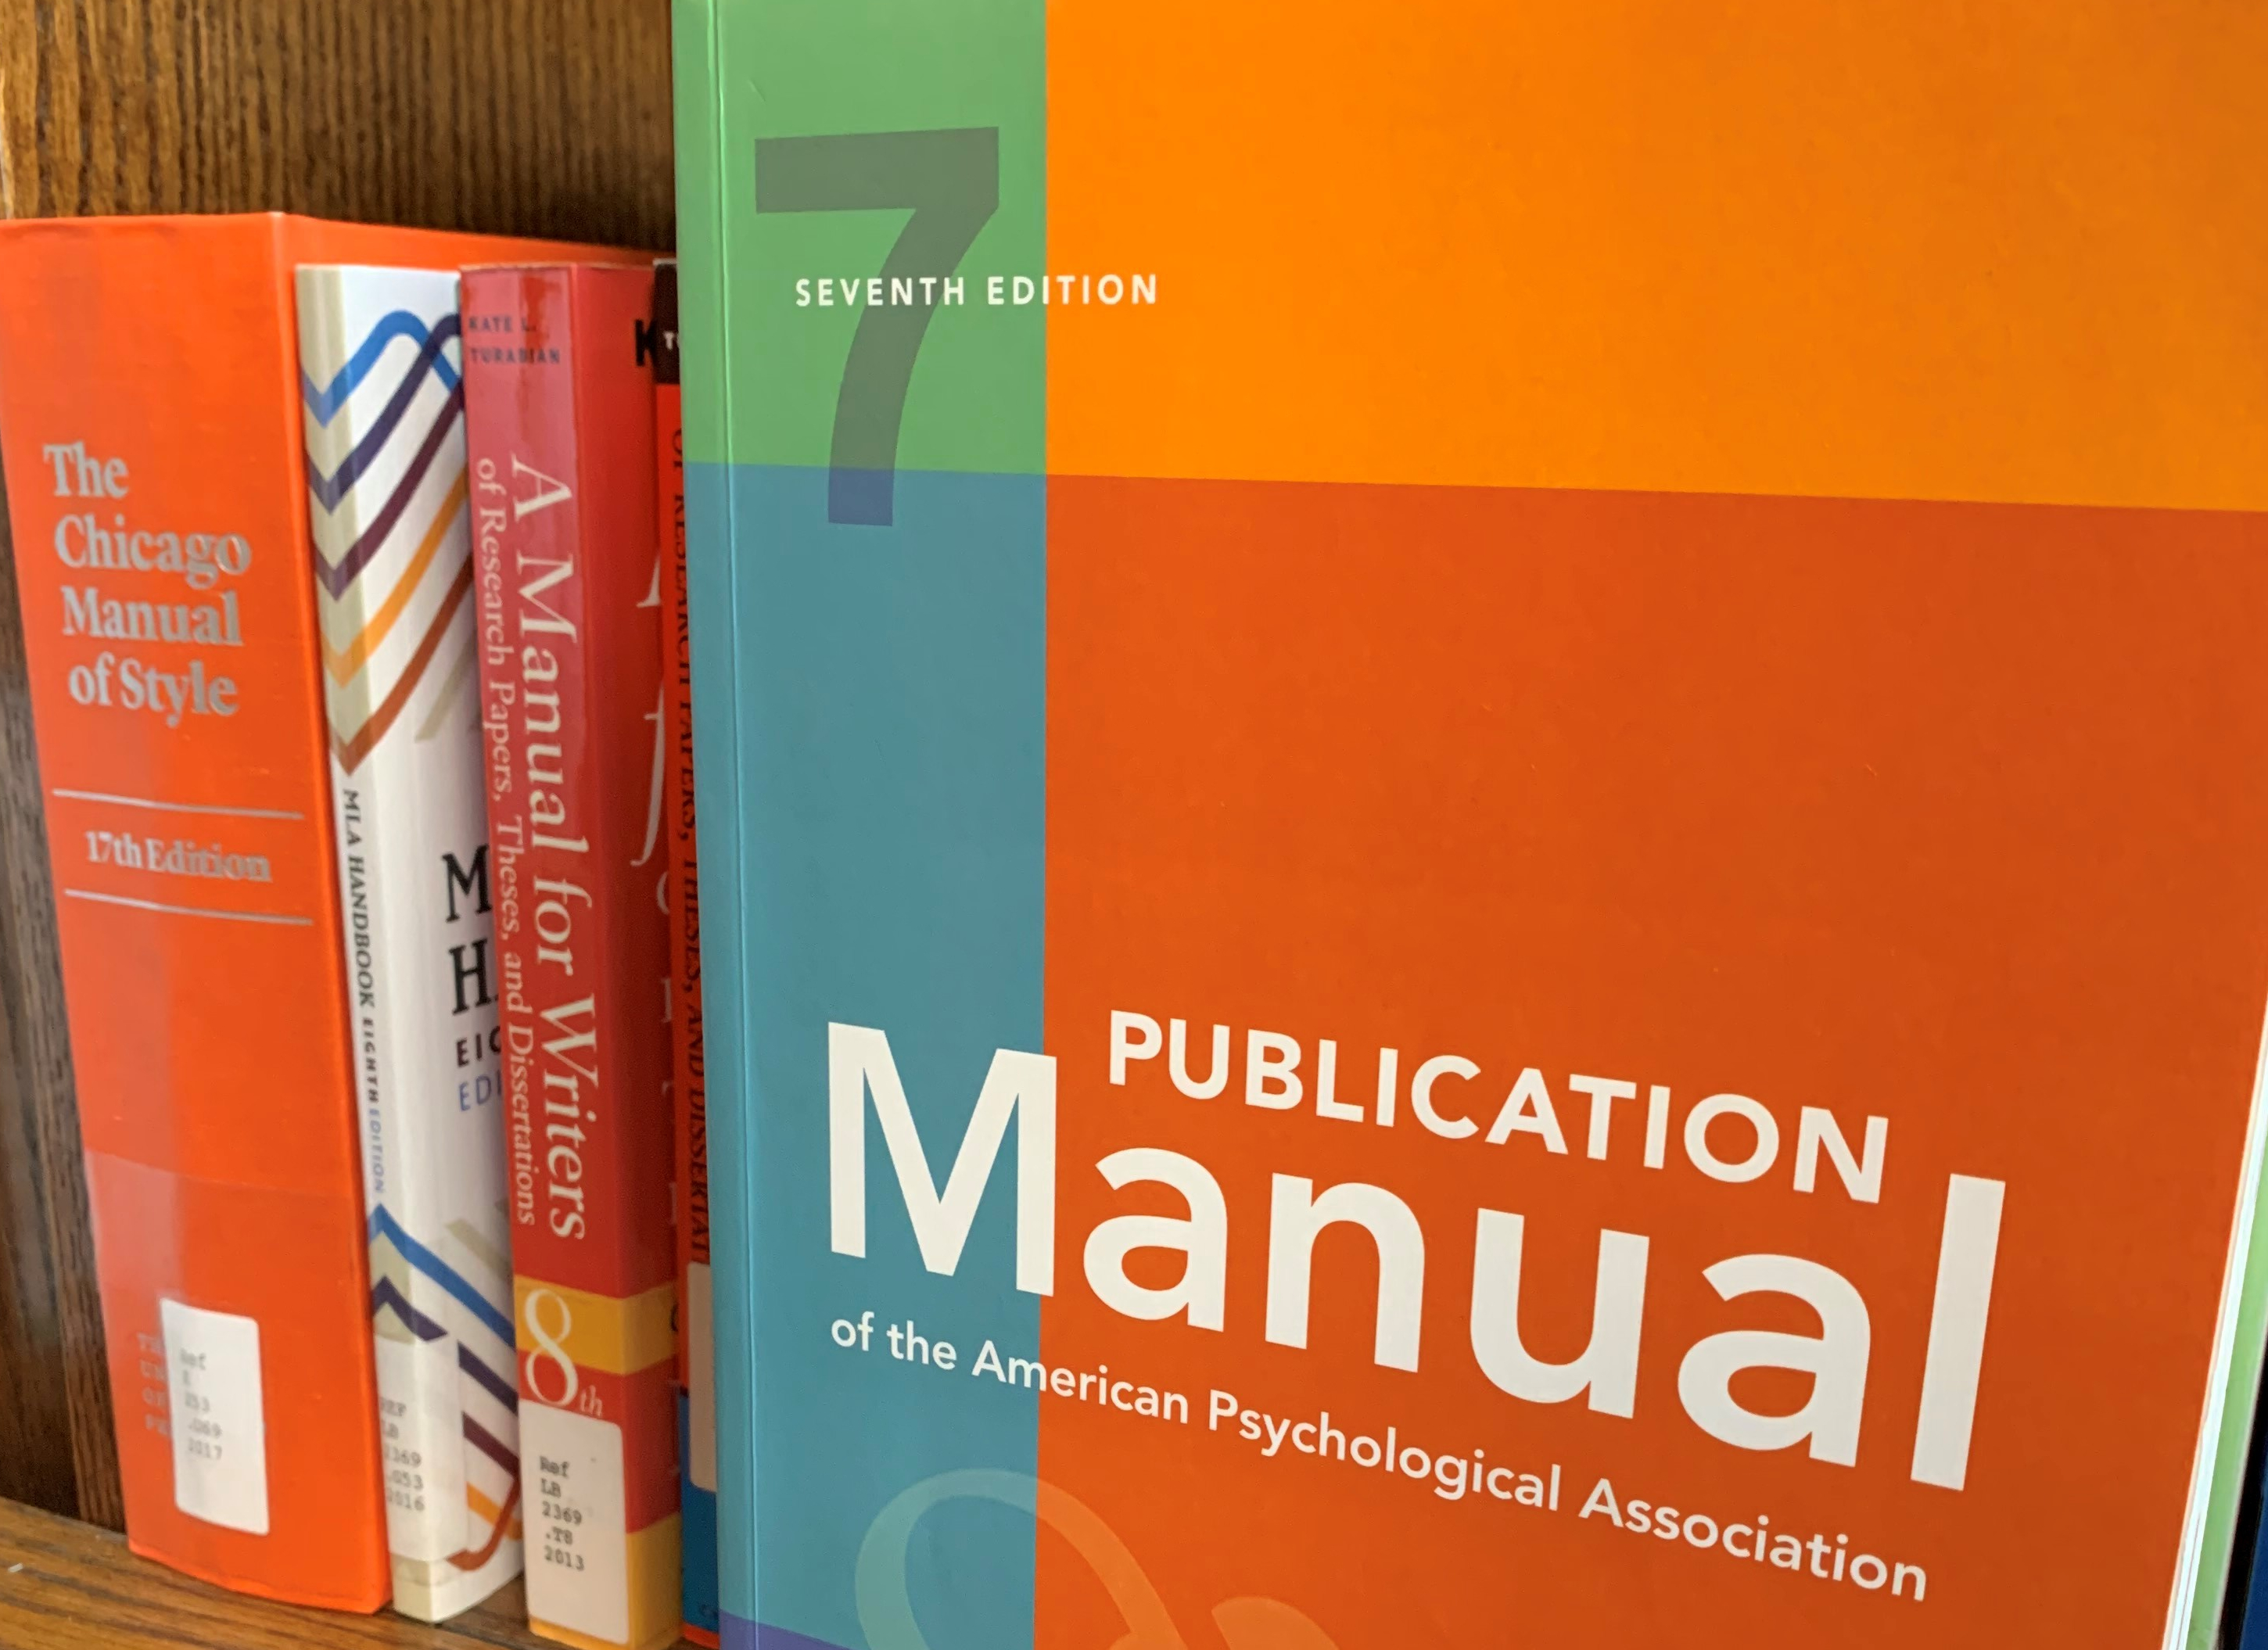 - Publication Manual of The American Psychological Association: 7th Edition American Psychological Association - Paperback